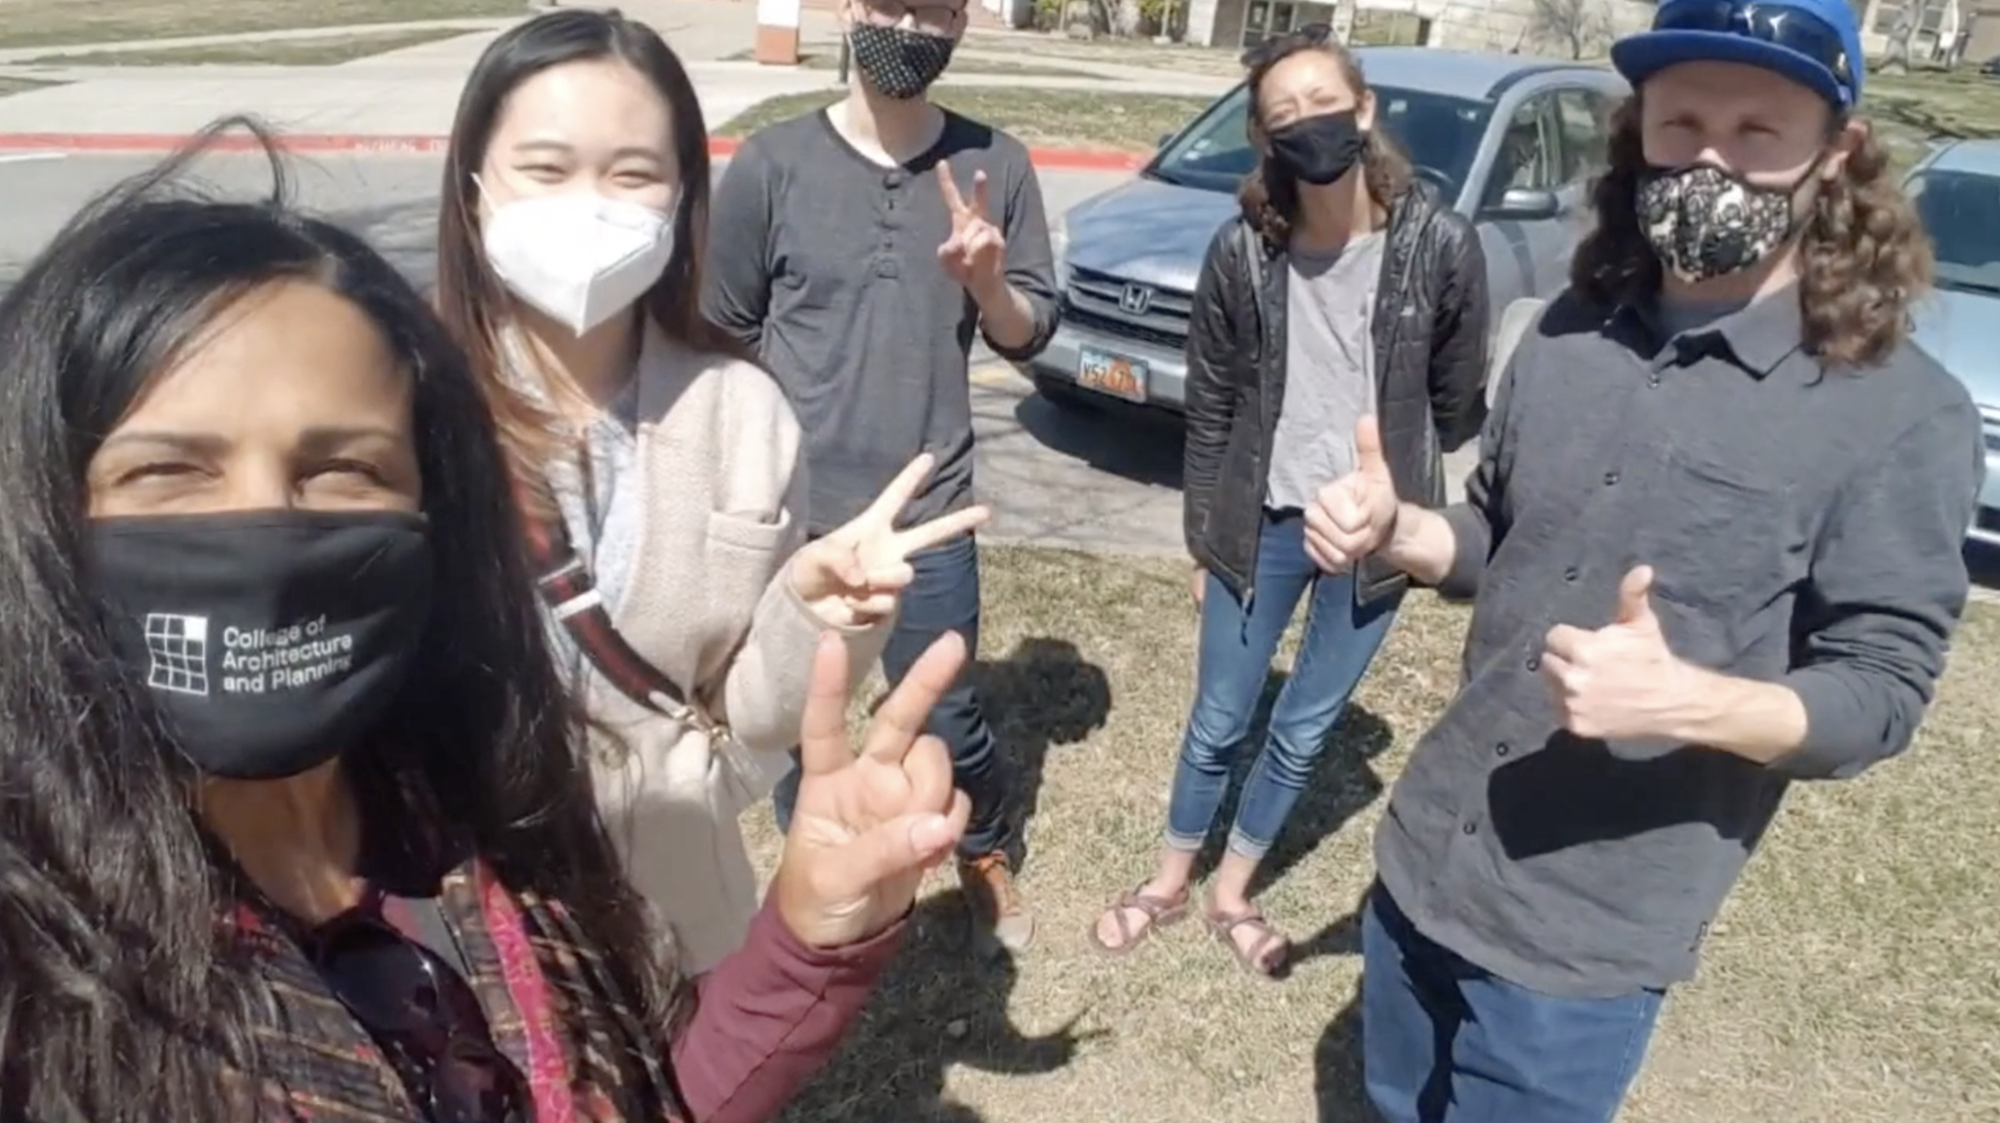 Five university students are wearing masks and giving approval hand signs (thumbs up, Vee). They are standing on grass. Two cars and a building are visible behind them.